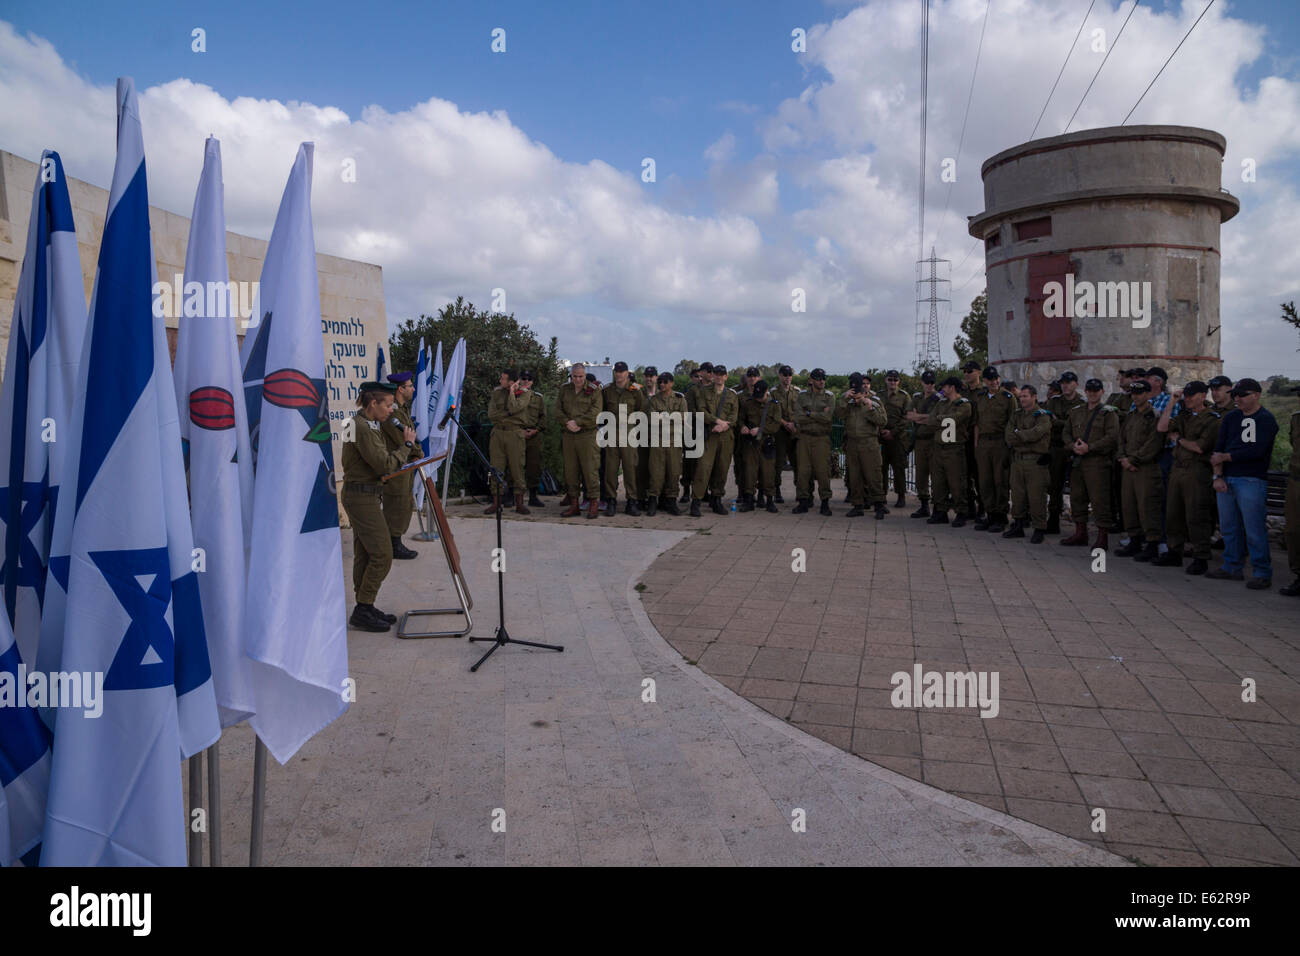 Ad Halom Bridge, Ashdod, Israel. Military officers during a ceremony near an old british 'pillbox' guard - Stock Image